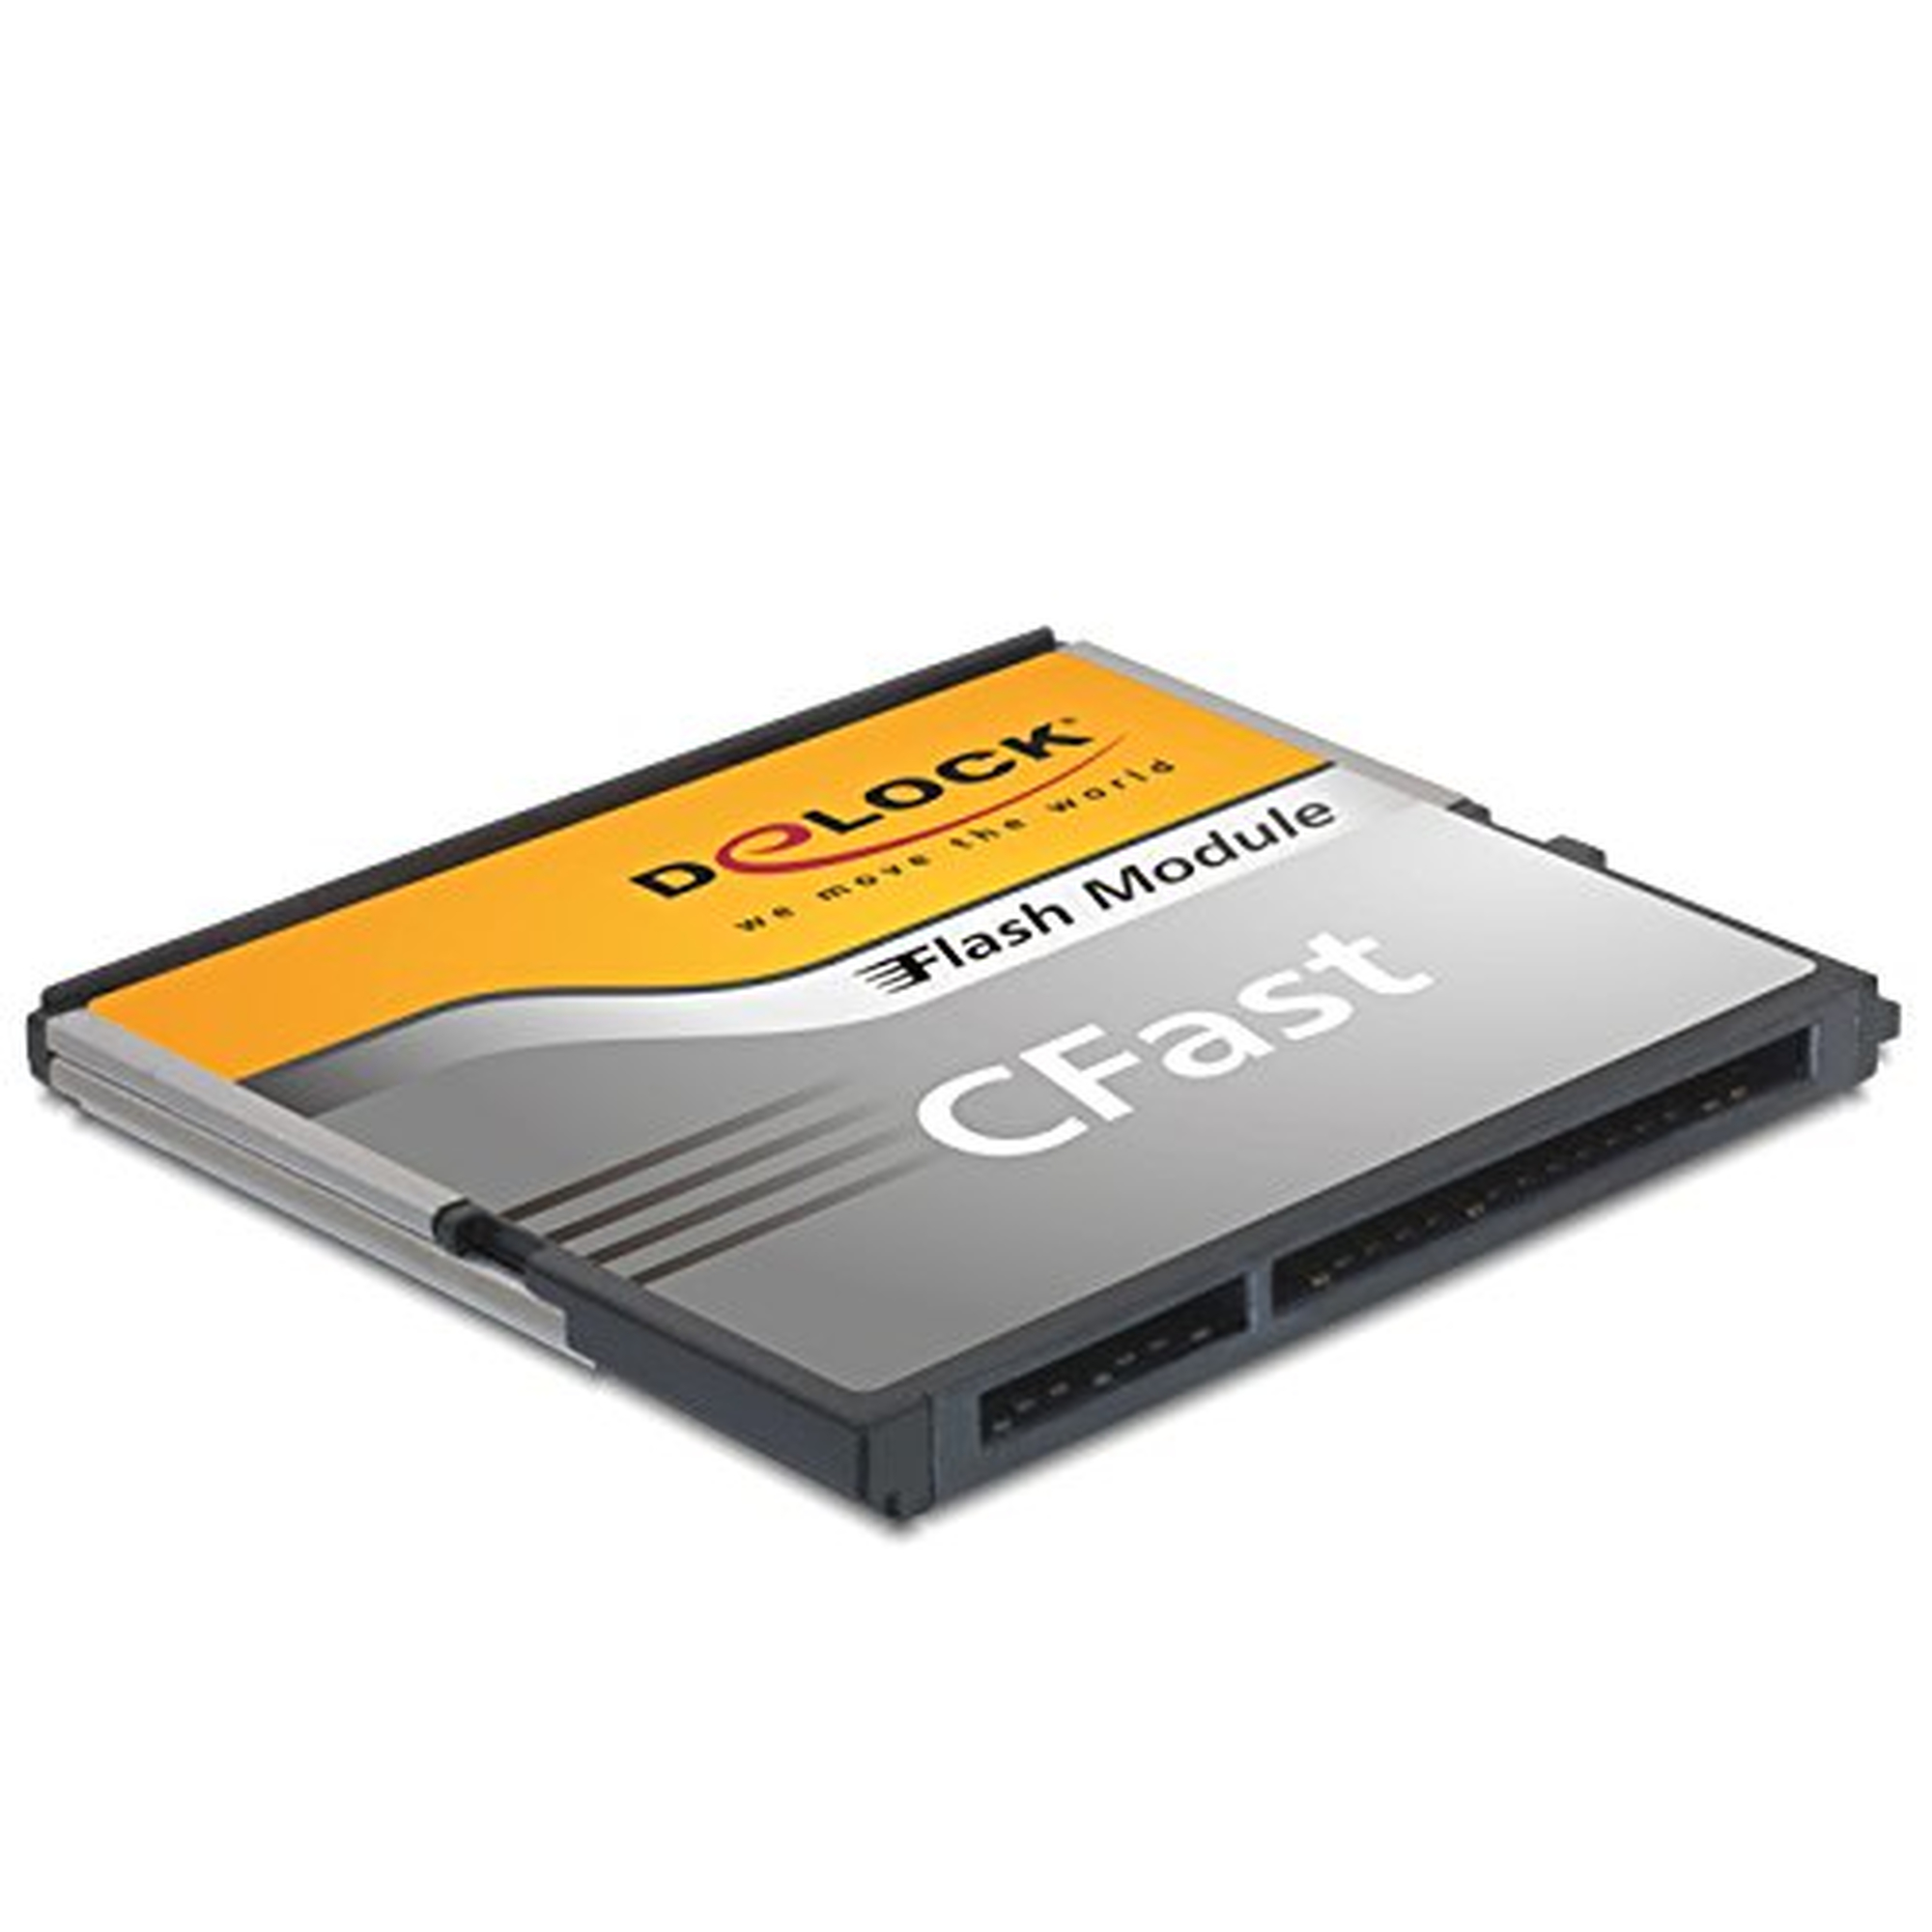 DeLOCK SP CFast-Card SATA 6 Gb/s 32GB